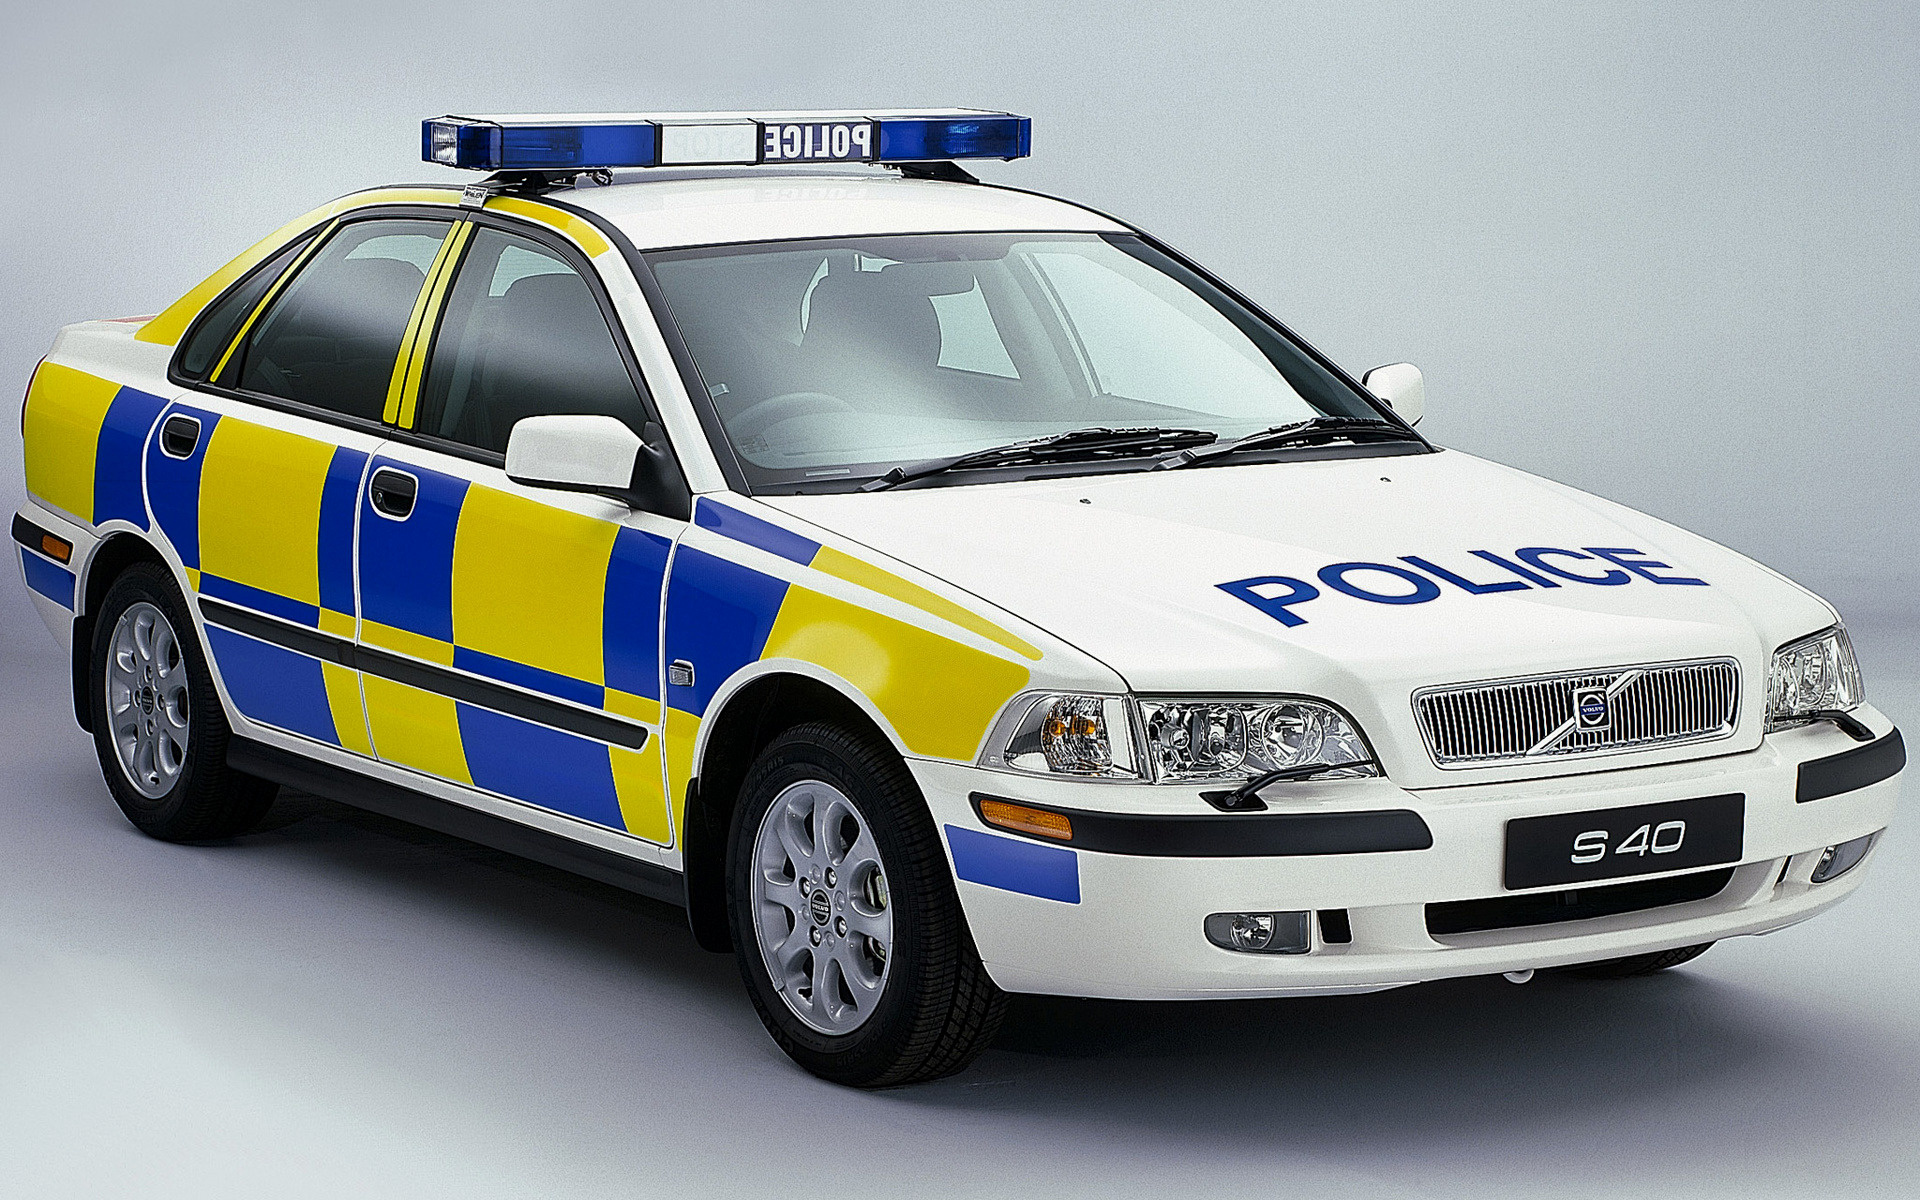 2000 volvo s40 police uk wallpapers and hd images. Black Bedroom Furniture Sets. Home Design Ideas